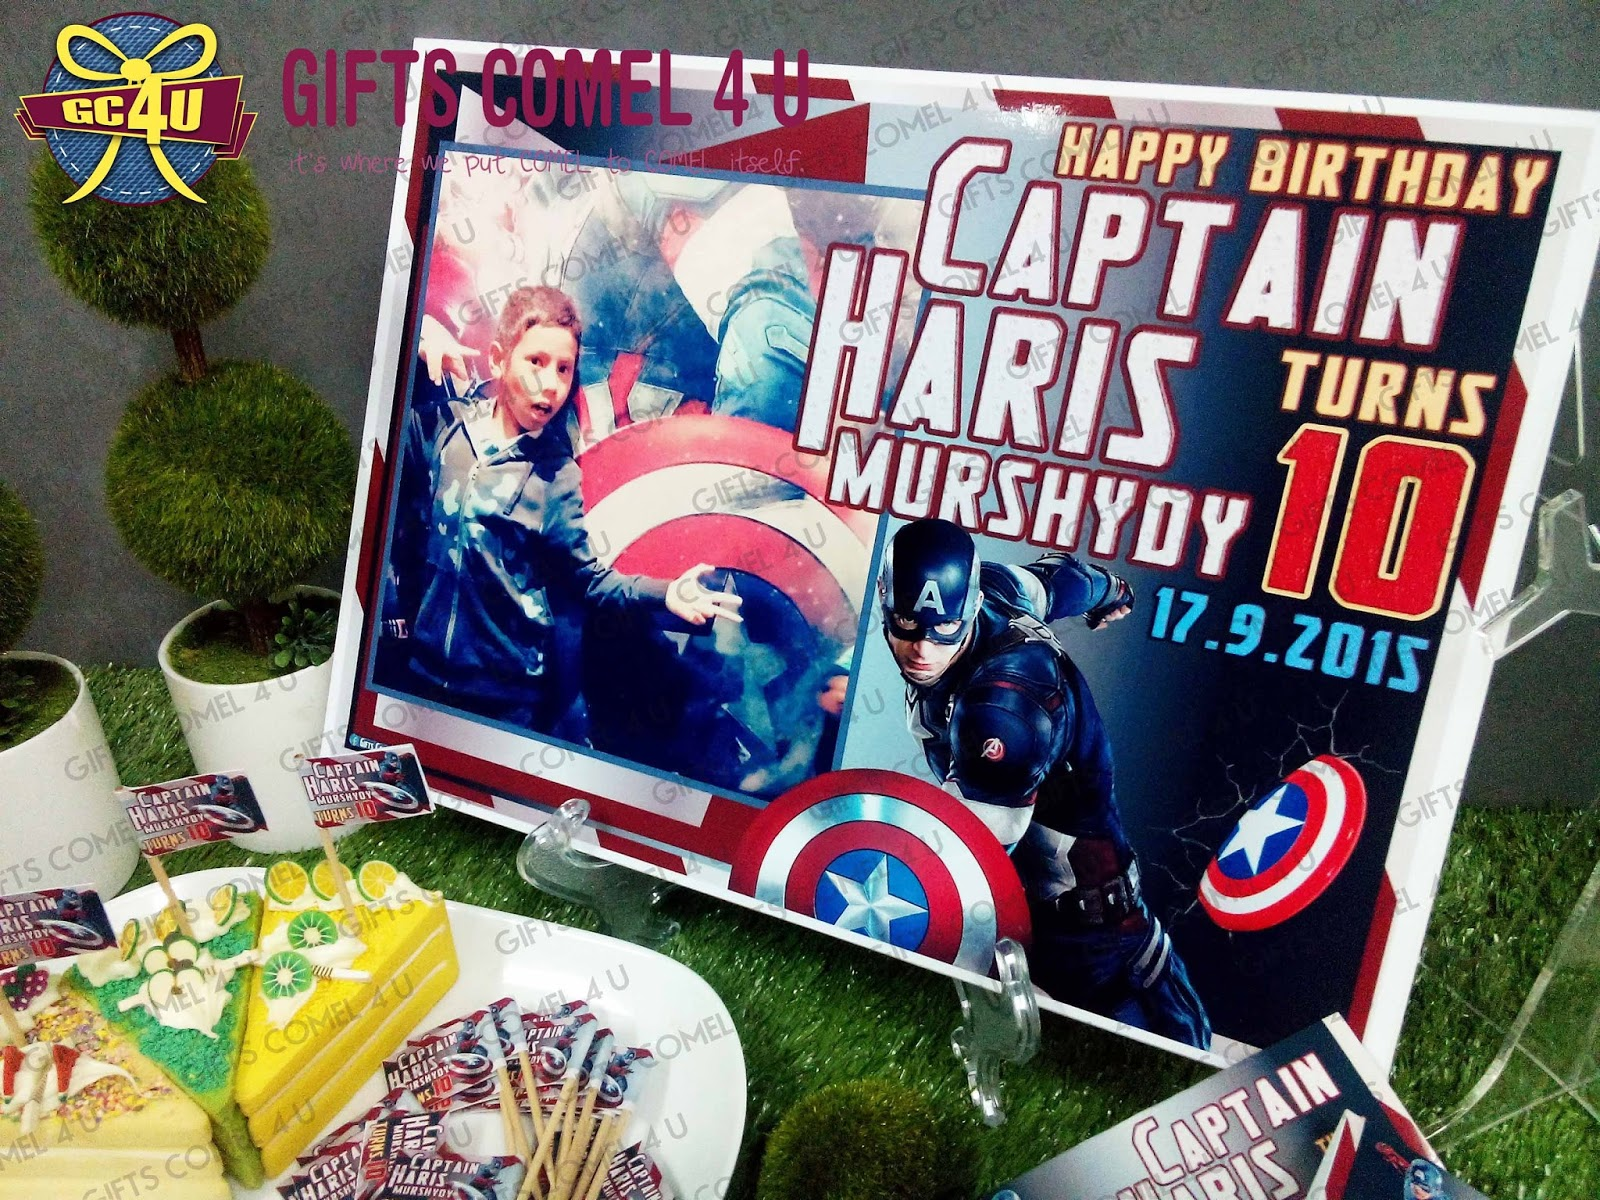 gifts comel 4 u ordered by roziana paiman captain america theme birthday set. Black Bedroom Furniture Sets. Home Design Ideas